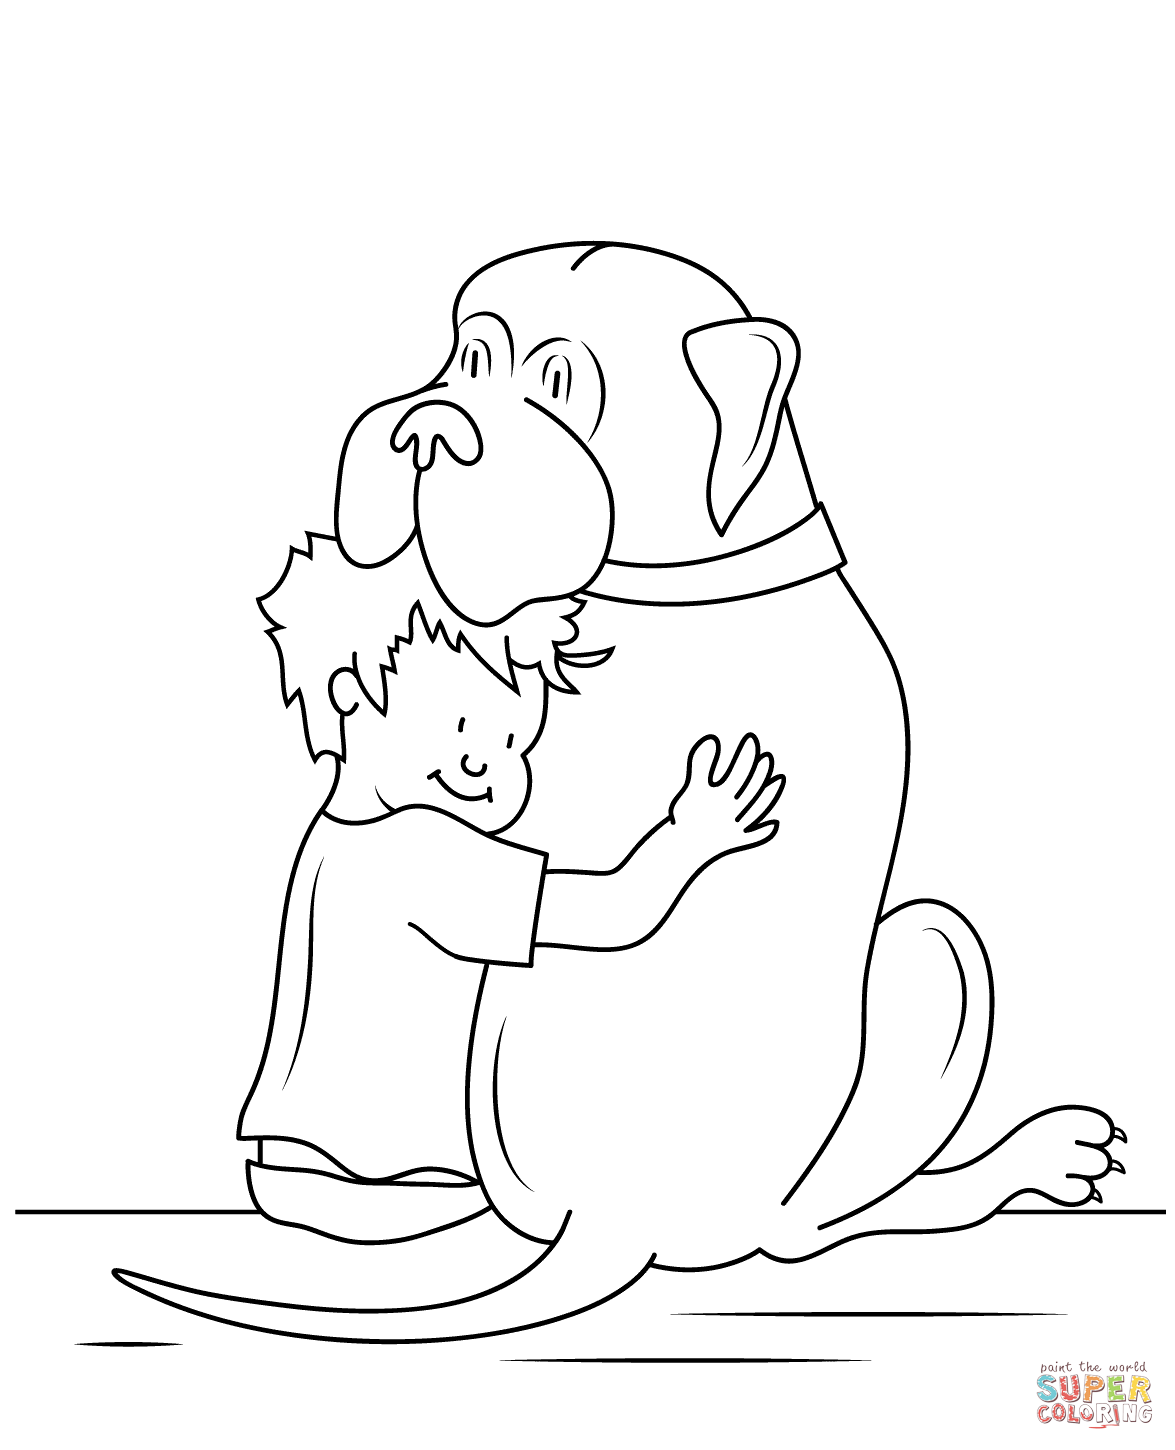 Henry and Mudge coloring page.